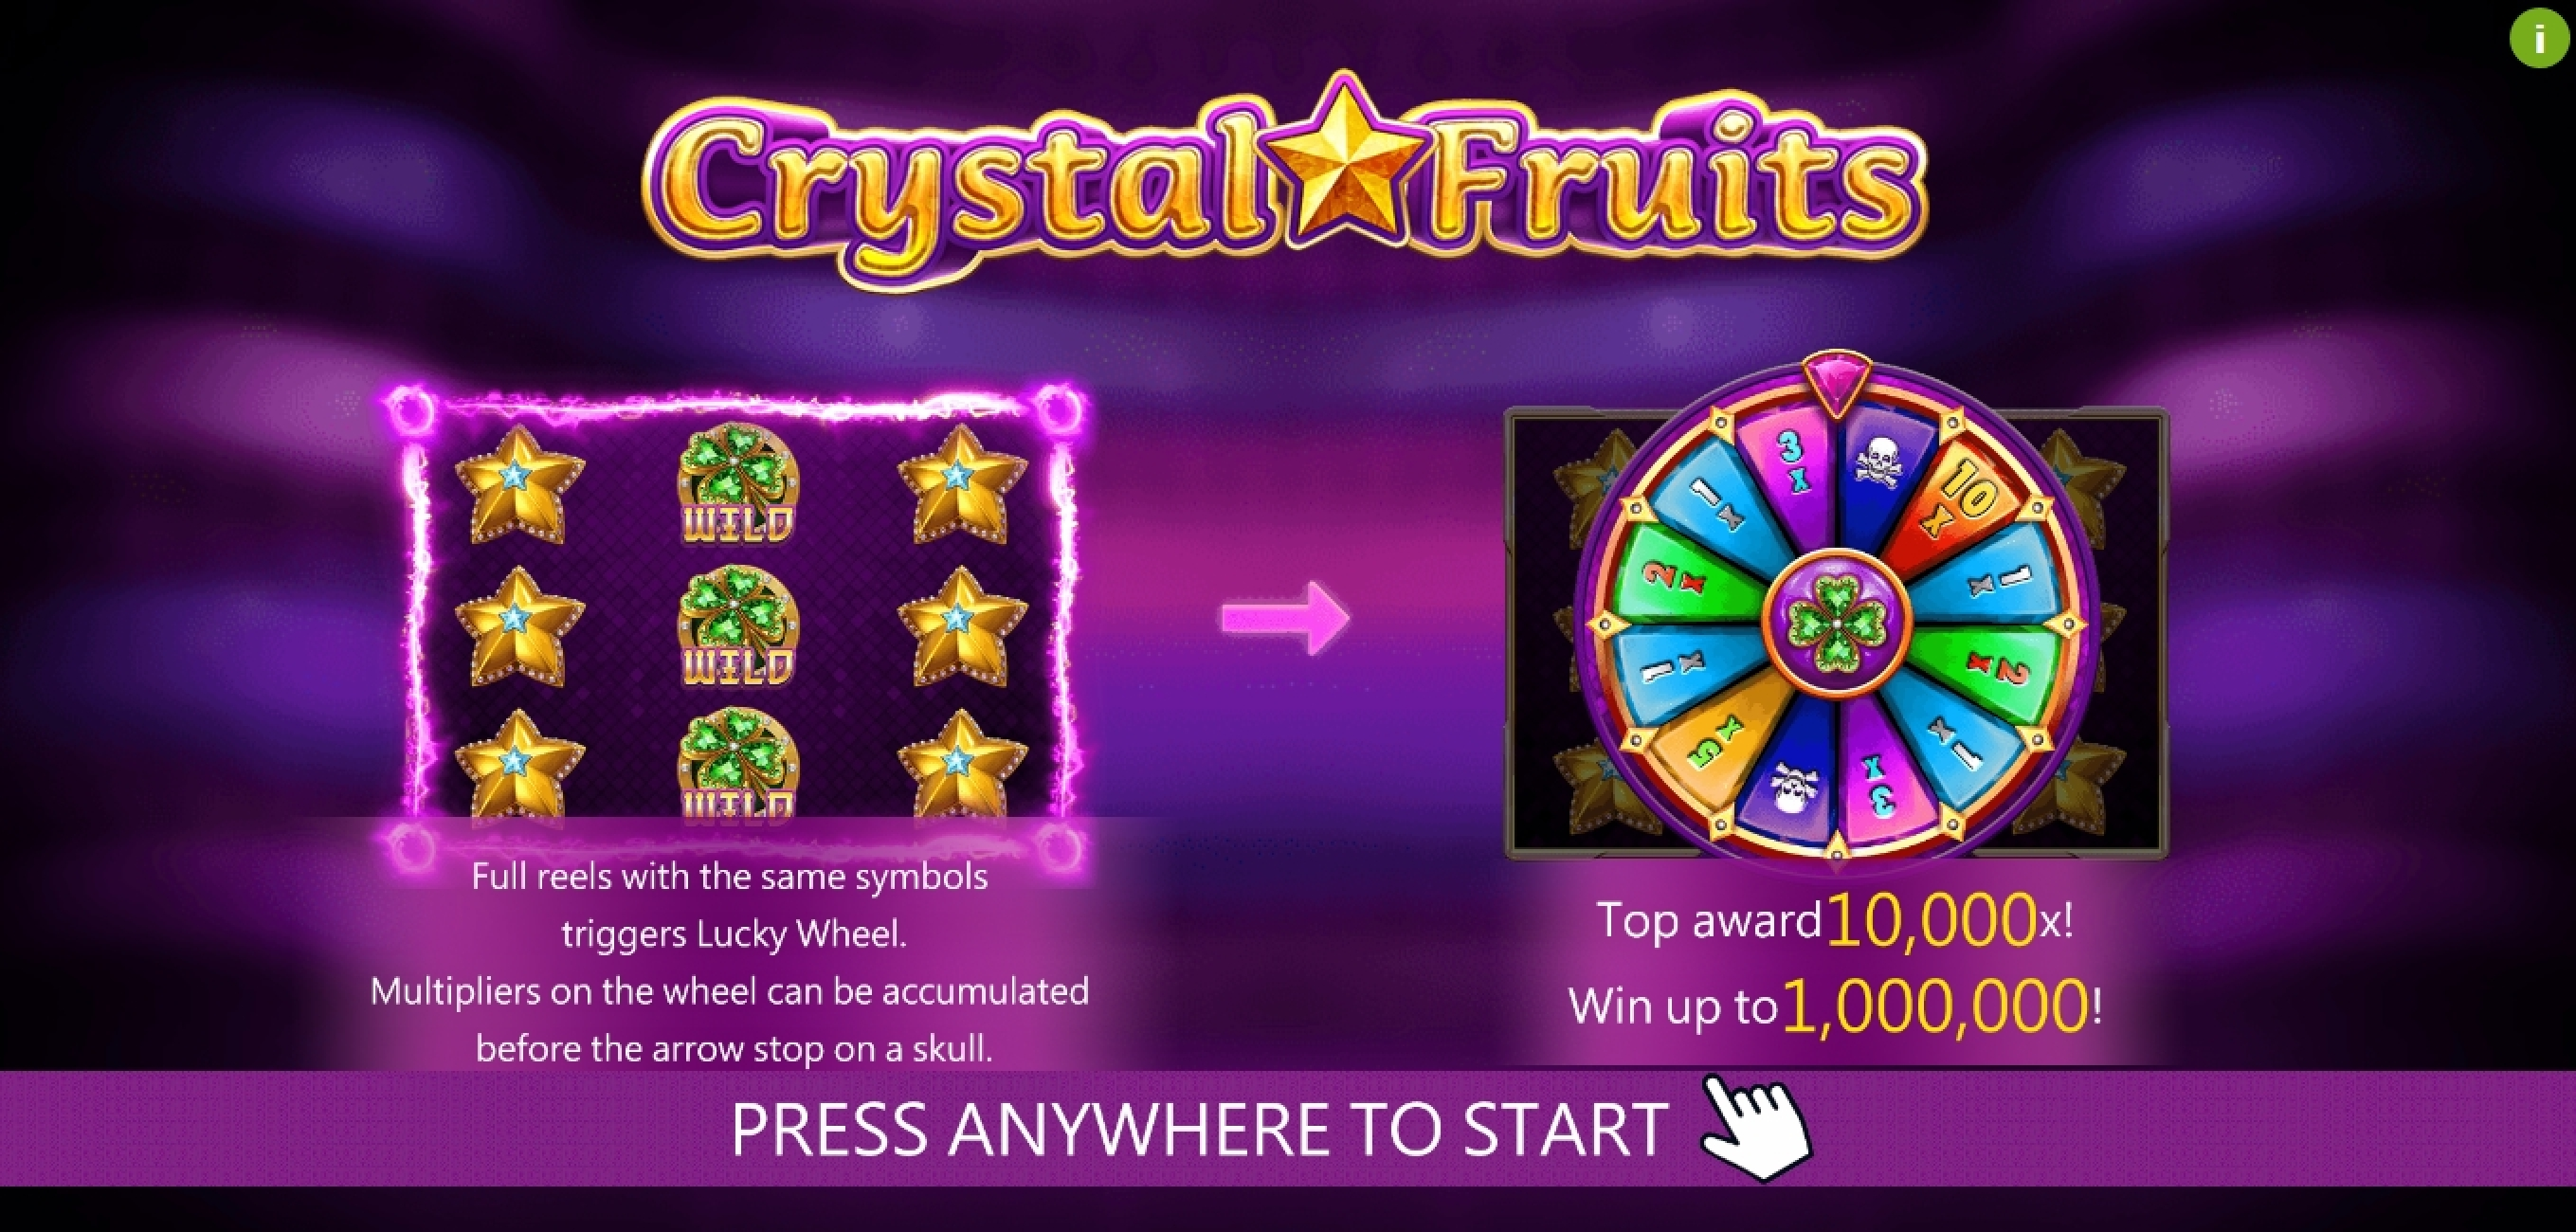 Play Crystal Fruits (Dragoon Soft) Free Casino Slot Game by Dragoon Soft